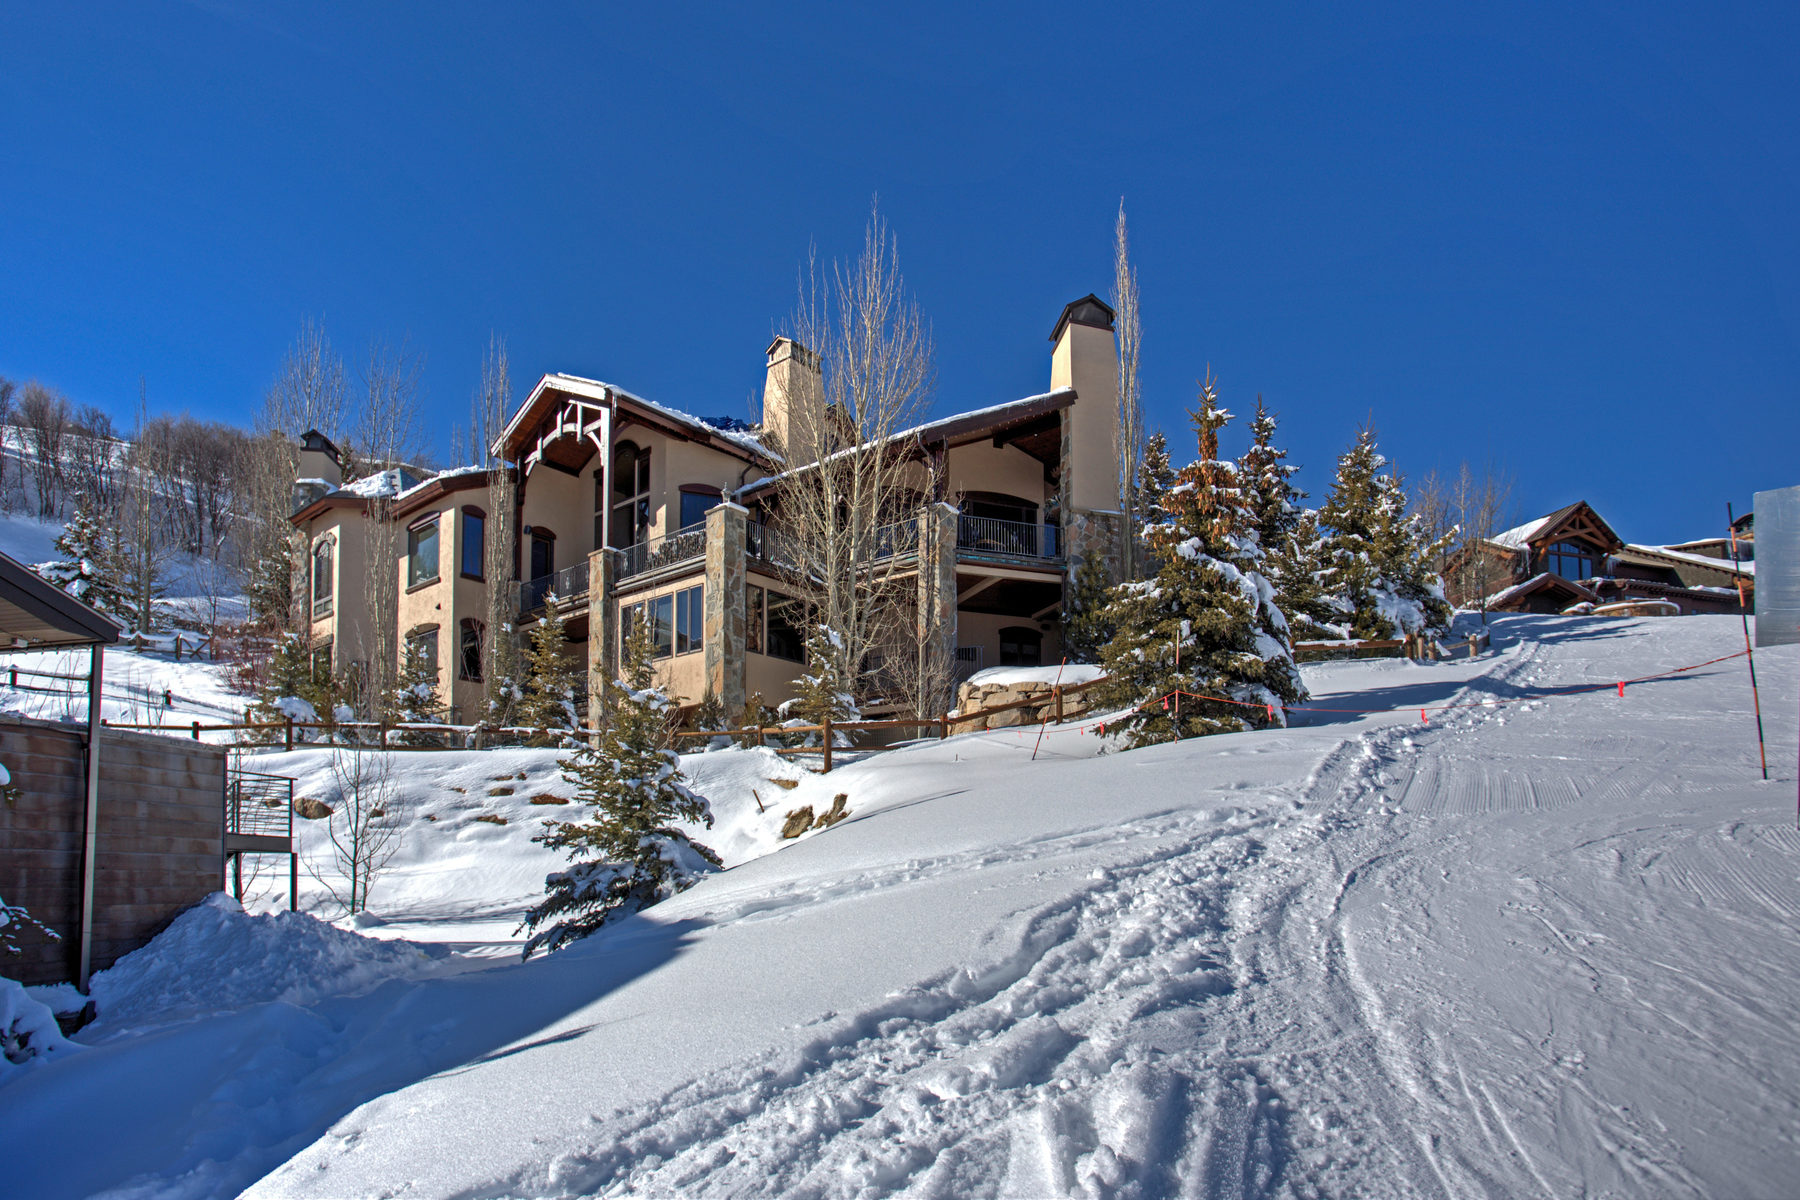 一戸建て のために 売買 アット Casa Cielo, Above the Clouds in Deer Crest 3300 W Deer Crest Estates Dr Park City, ユタ, 84060 アメリカ合衆国